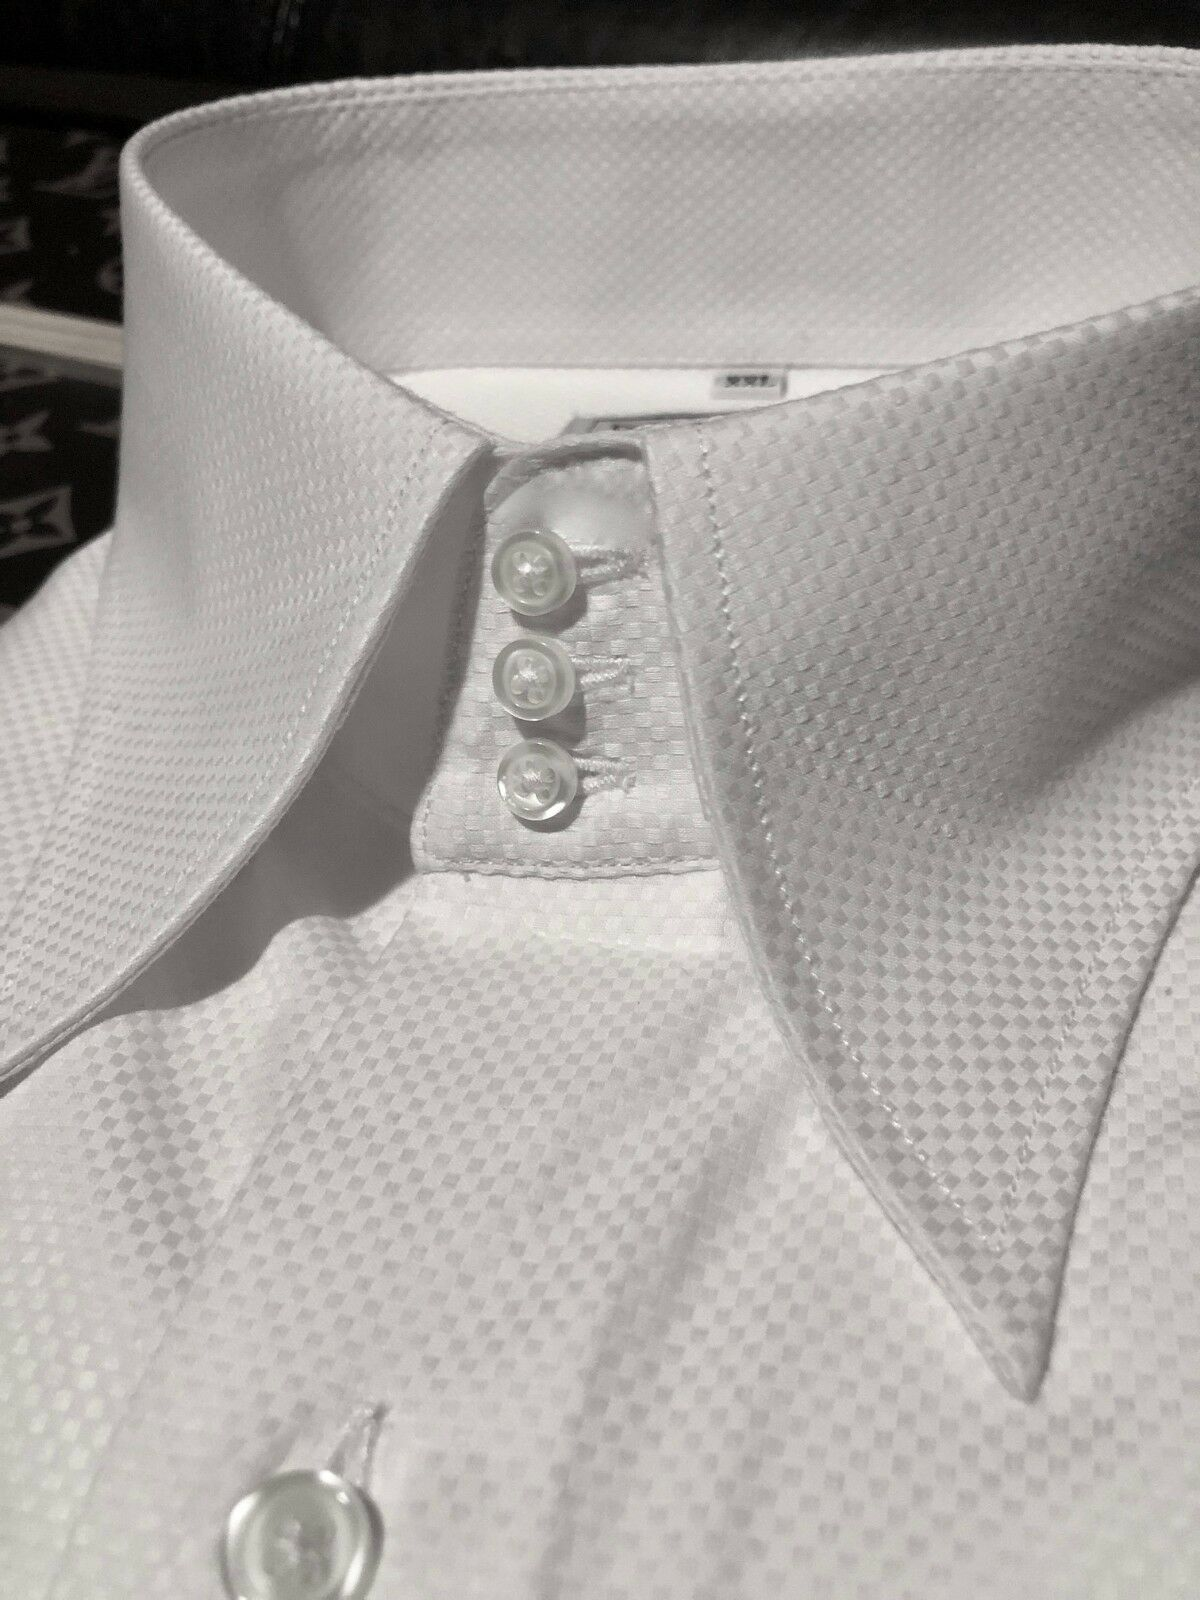 MorCouture White Woven 3 Button High Collar Shirt